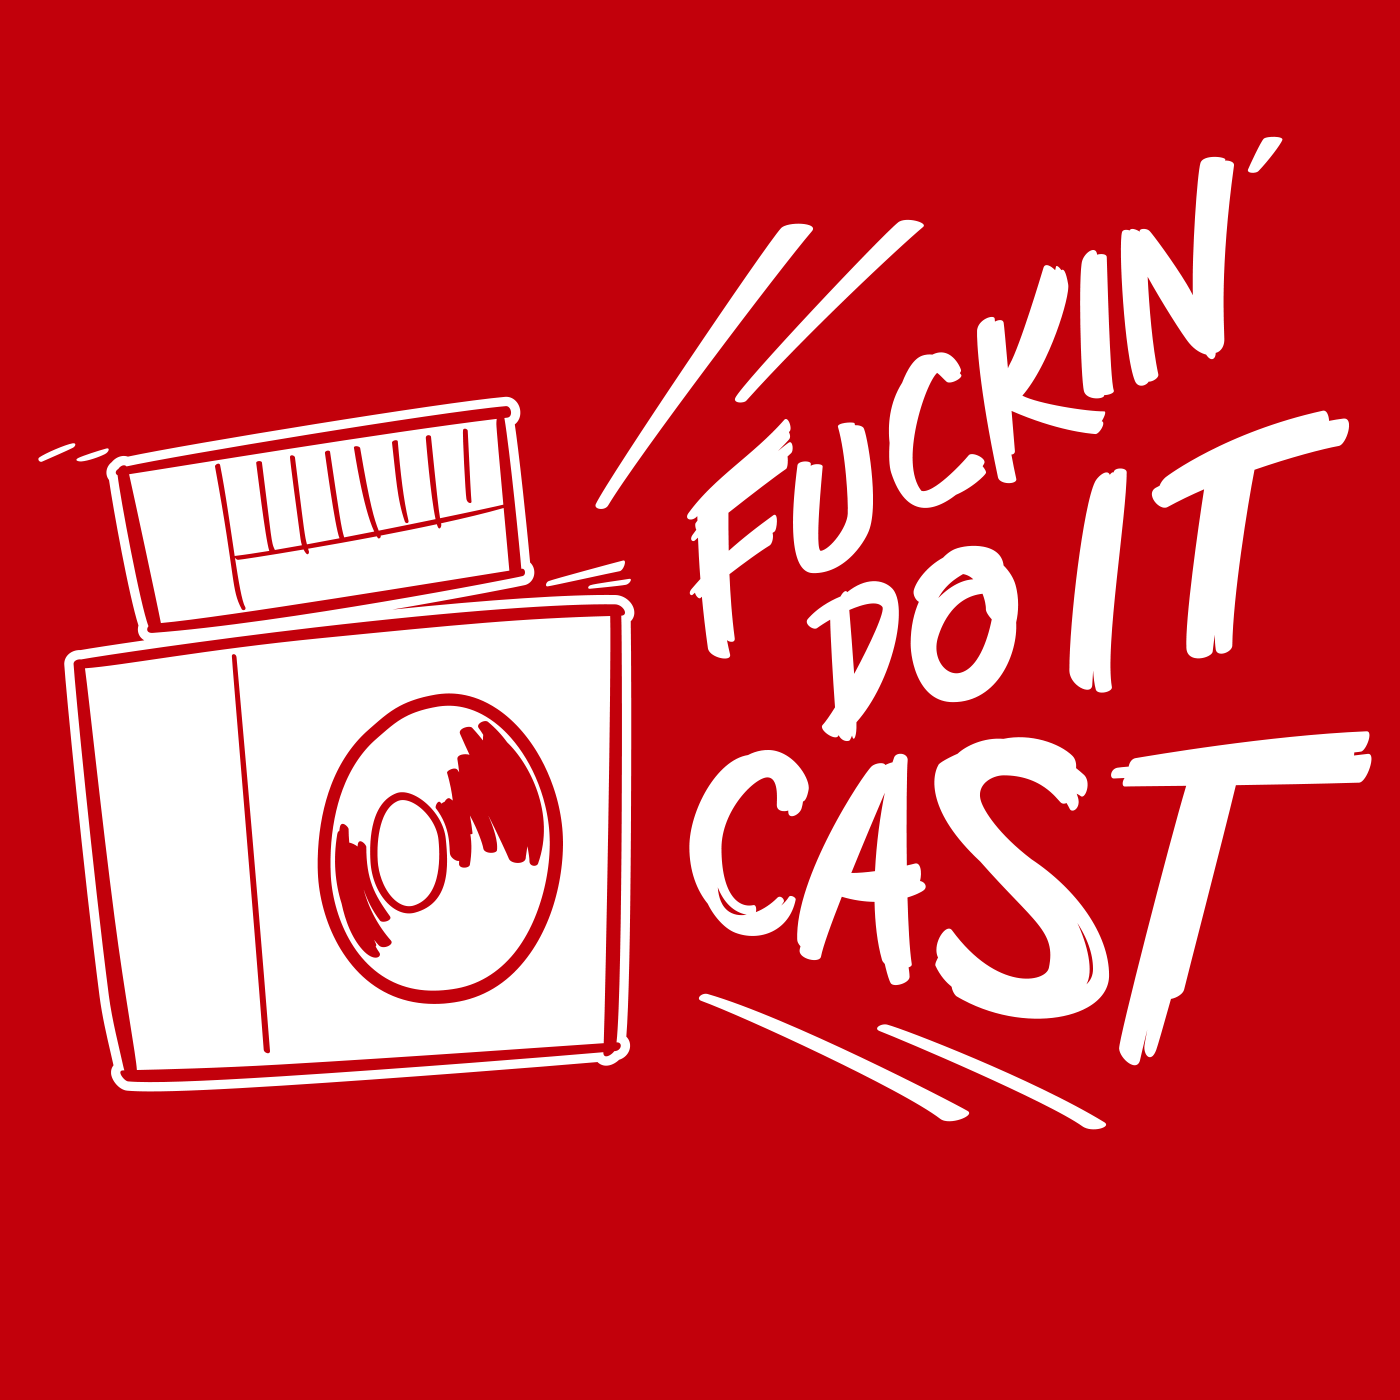 FDI Cast - Hosts Brandon and Jamie workshop terrible ideas until they become slightly less terrible. From movies to comics to music to food, the FDI Cast throws a wide net across multiple aspects of popular culture.